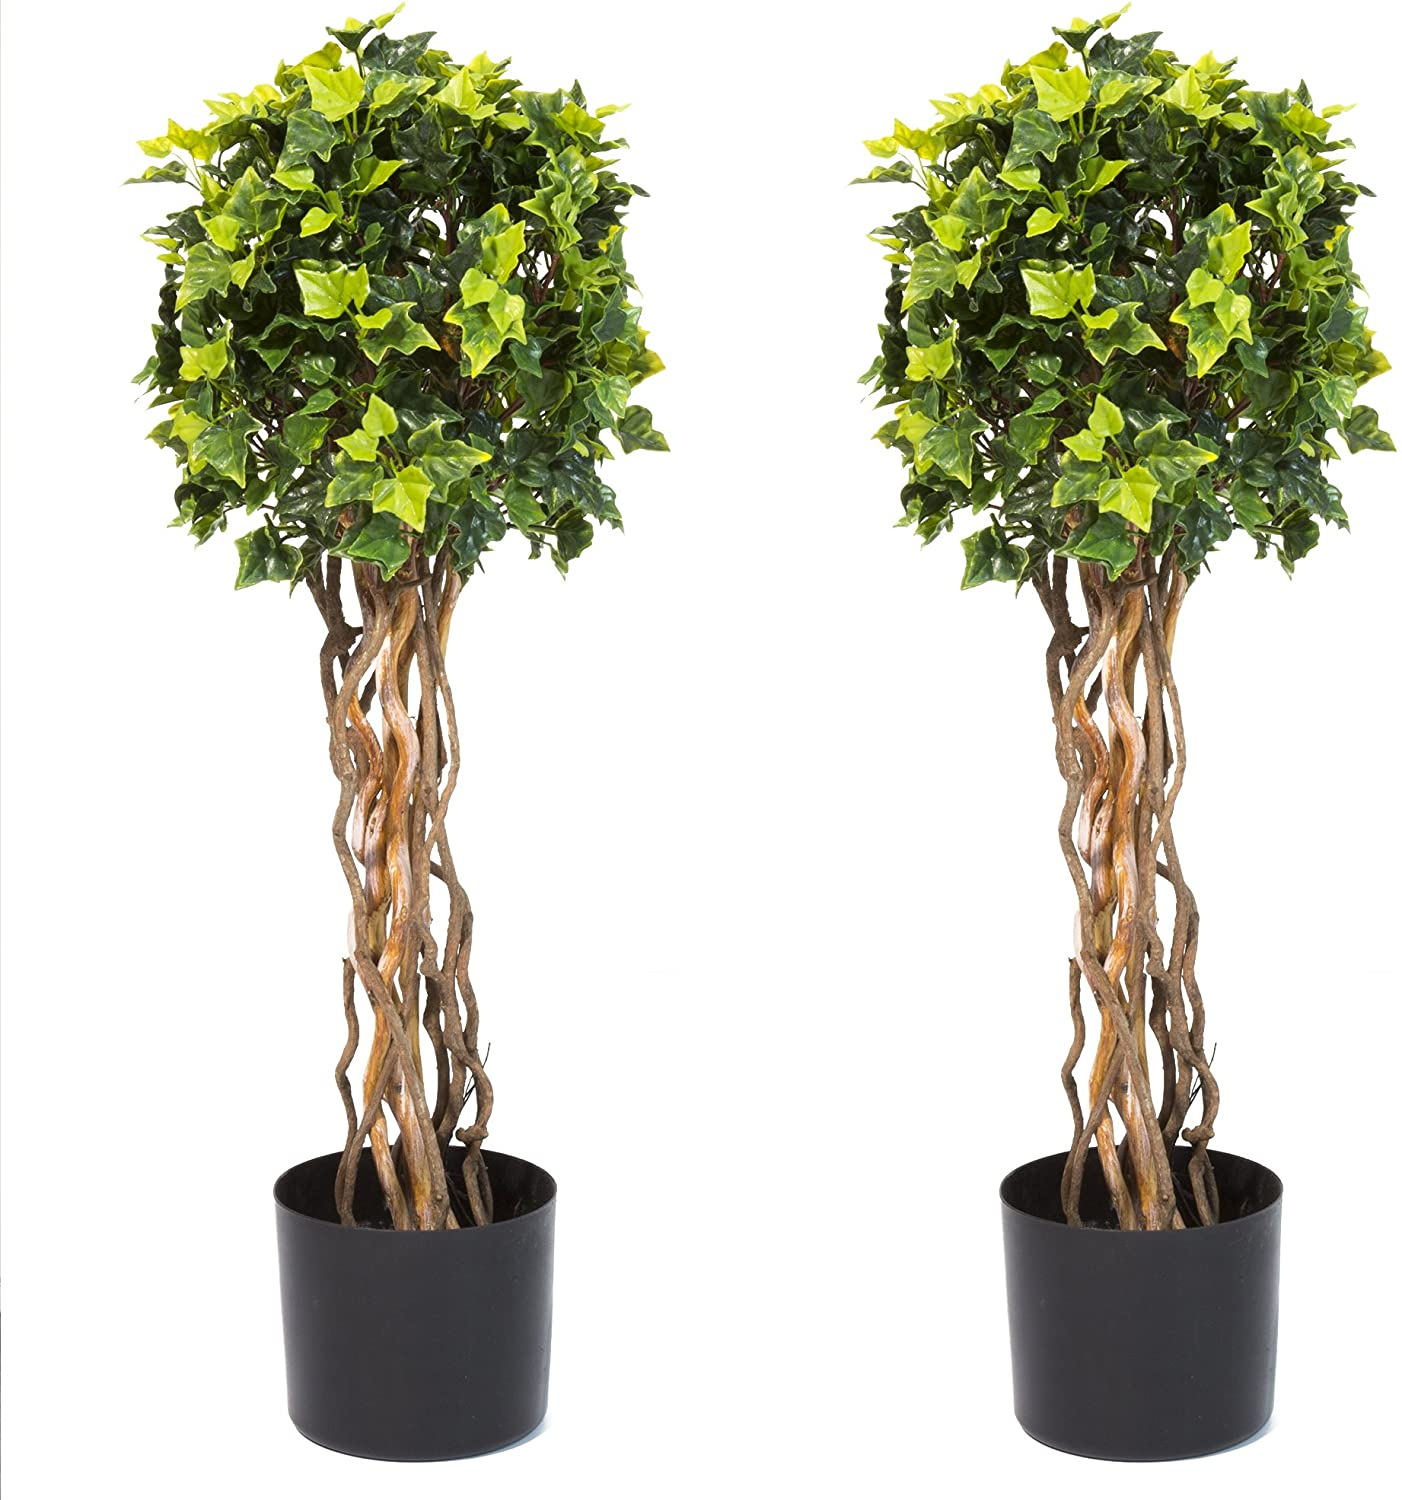 Pure Garden 30 Inch English Ivy Single Ball Topiary Tree - Set of 2